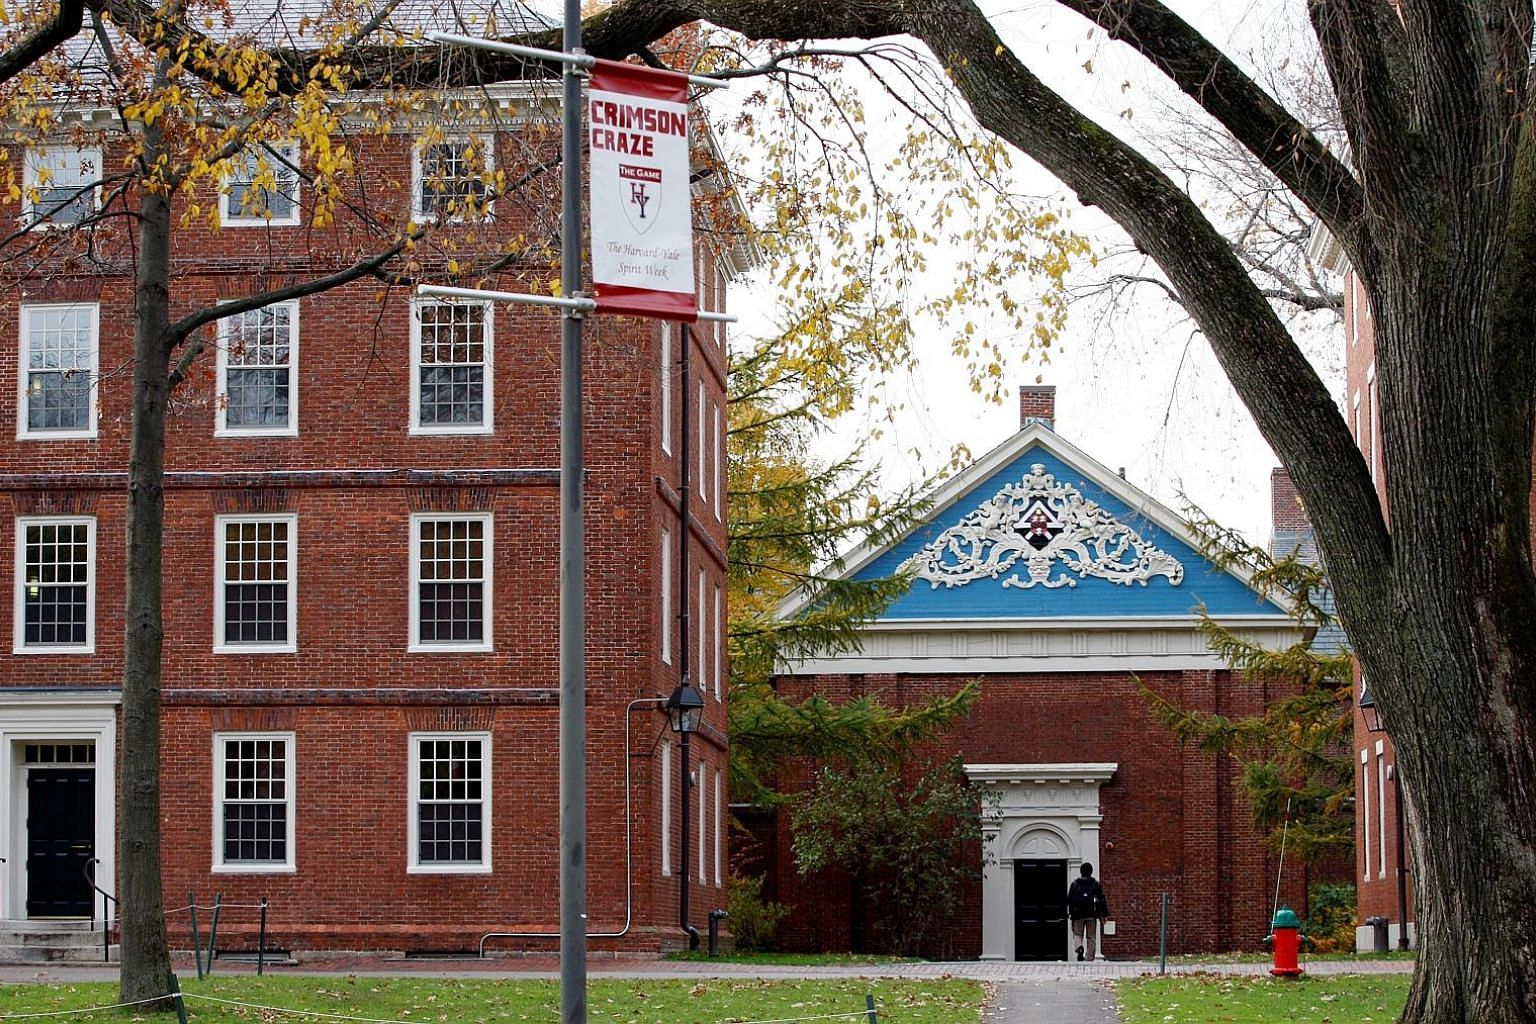 Harvard University has chosen not to renew a five-year fellowship programme with the MiSK Foundation, Saudi Crown Prince Mohammed bin Salman's charity, following the October murder of journalist Jamal Khashoggi by a Saudi hit squad.